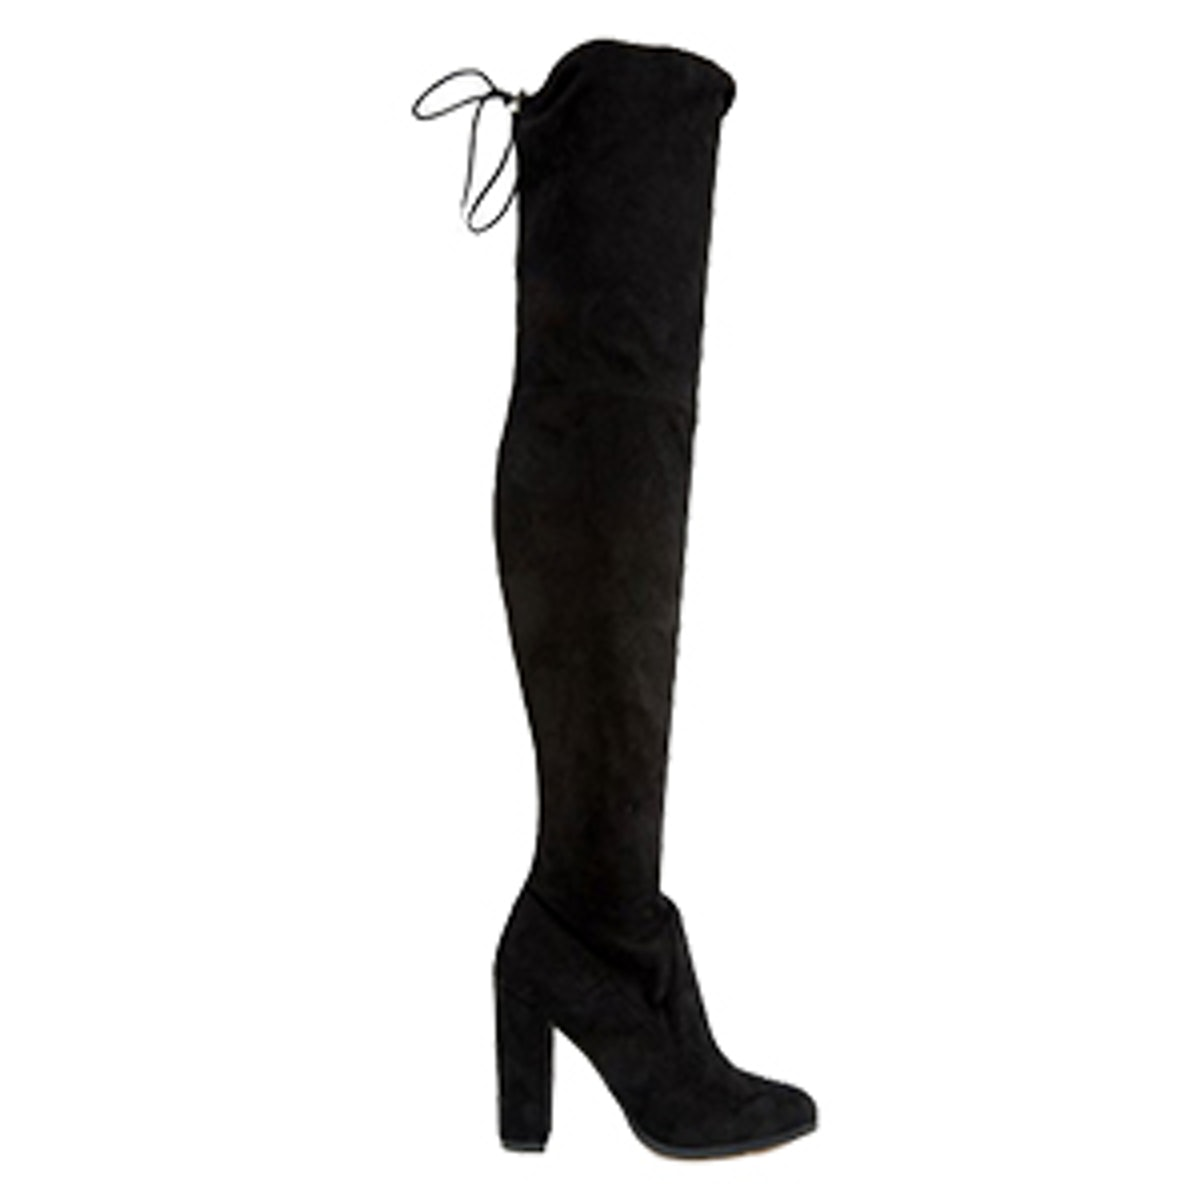 Kingdom Stretch Over The Knee Heeled Boots